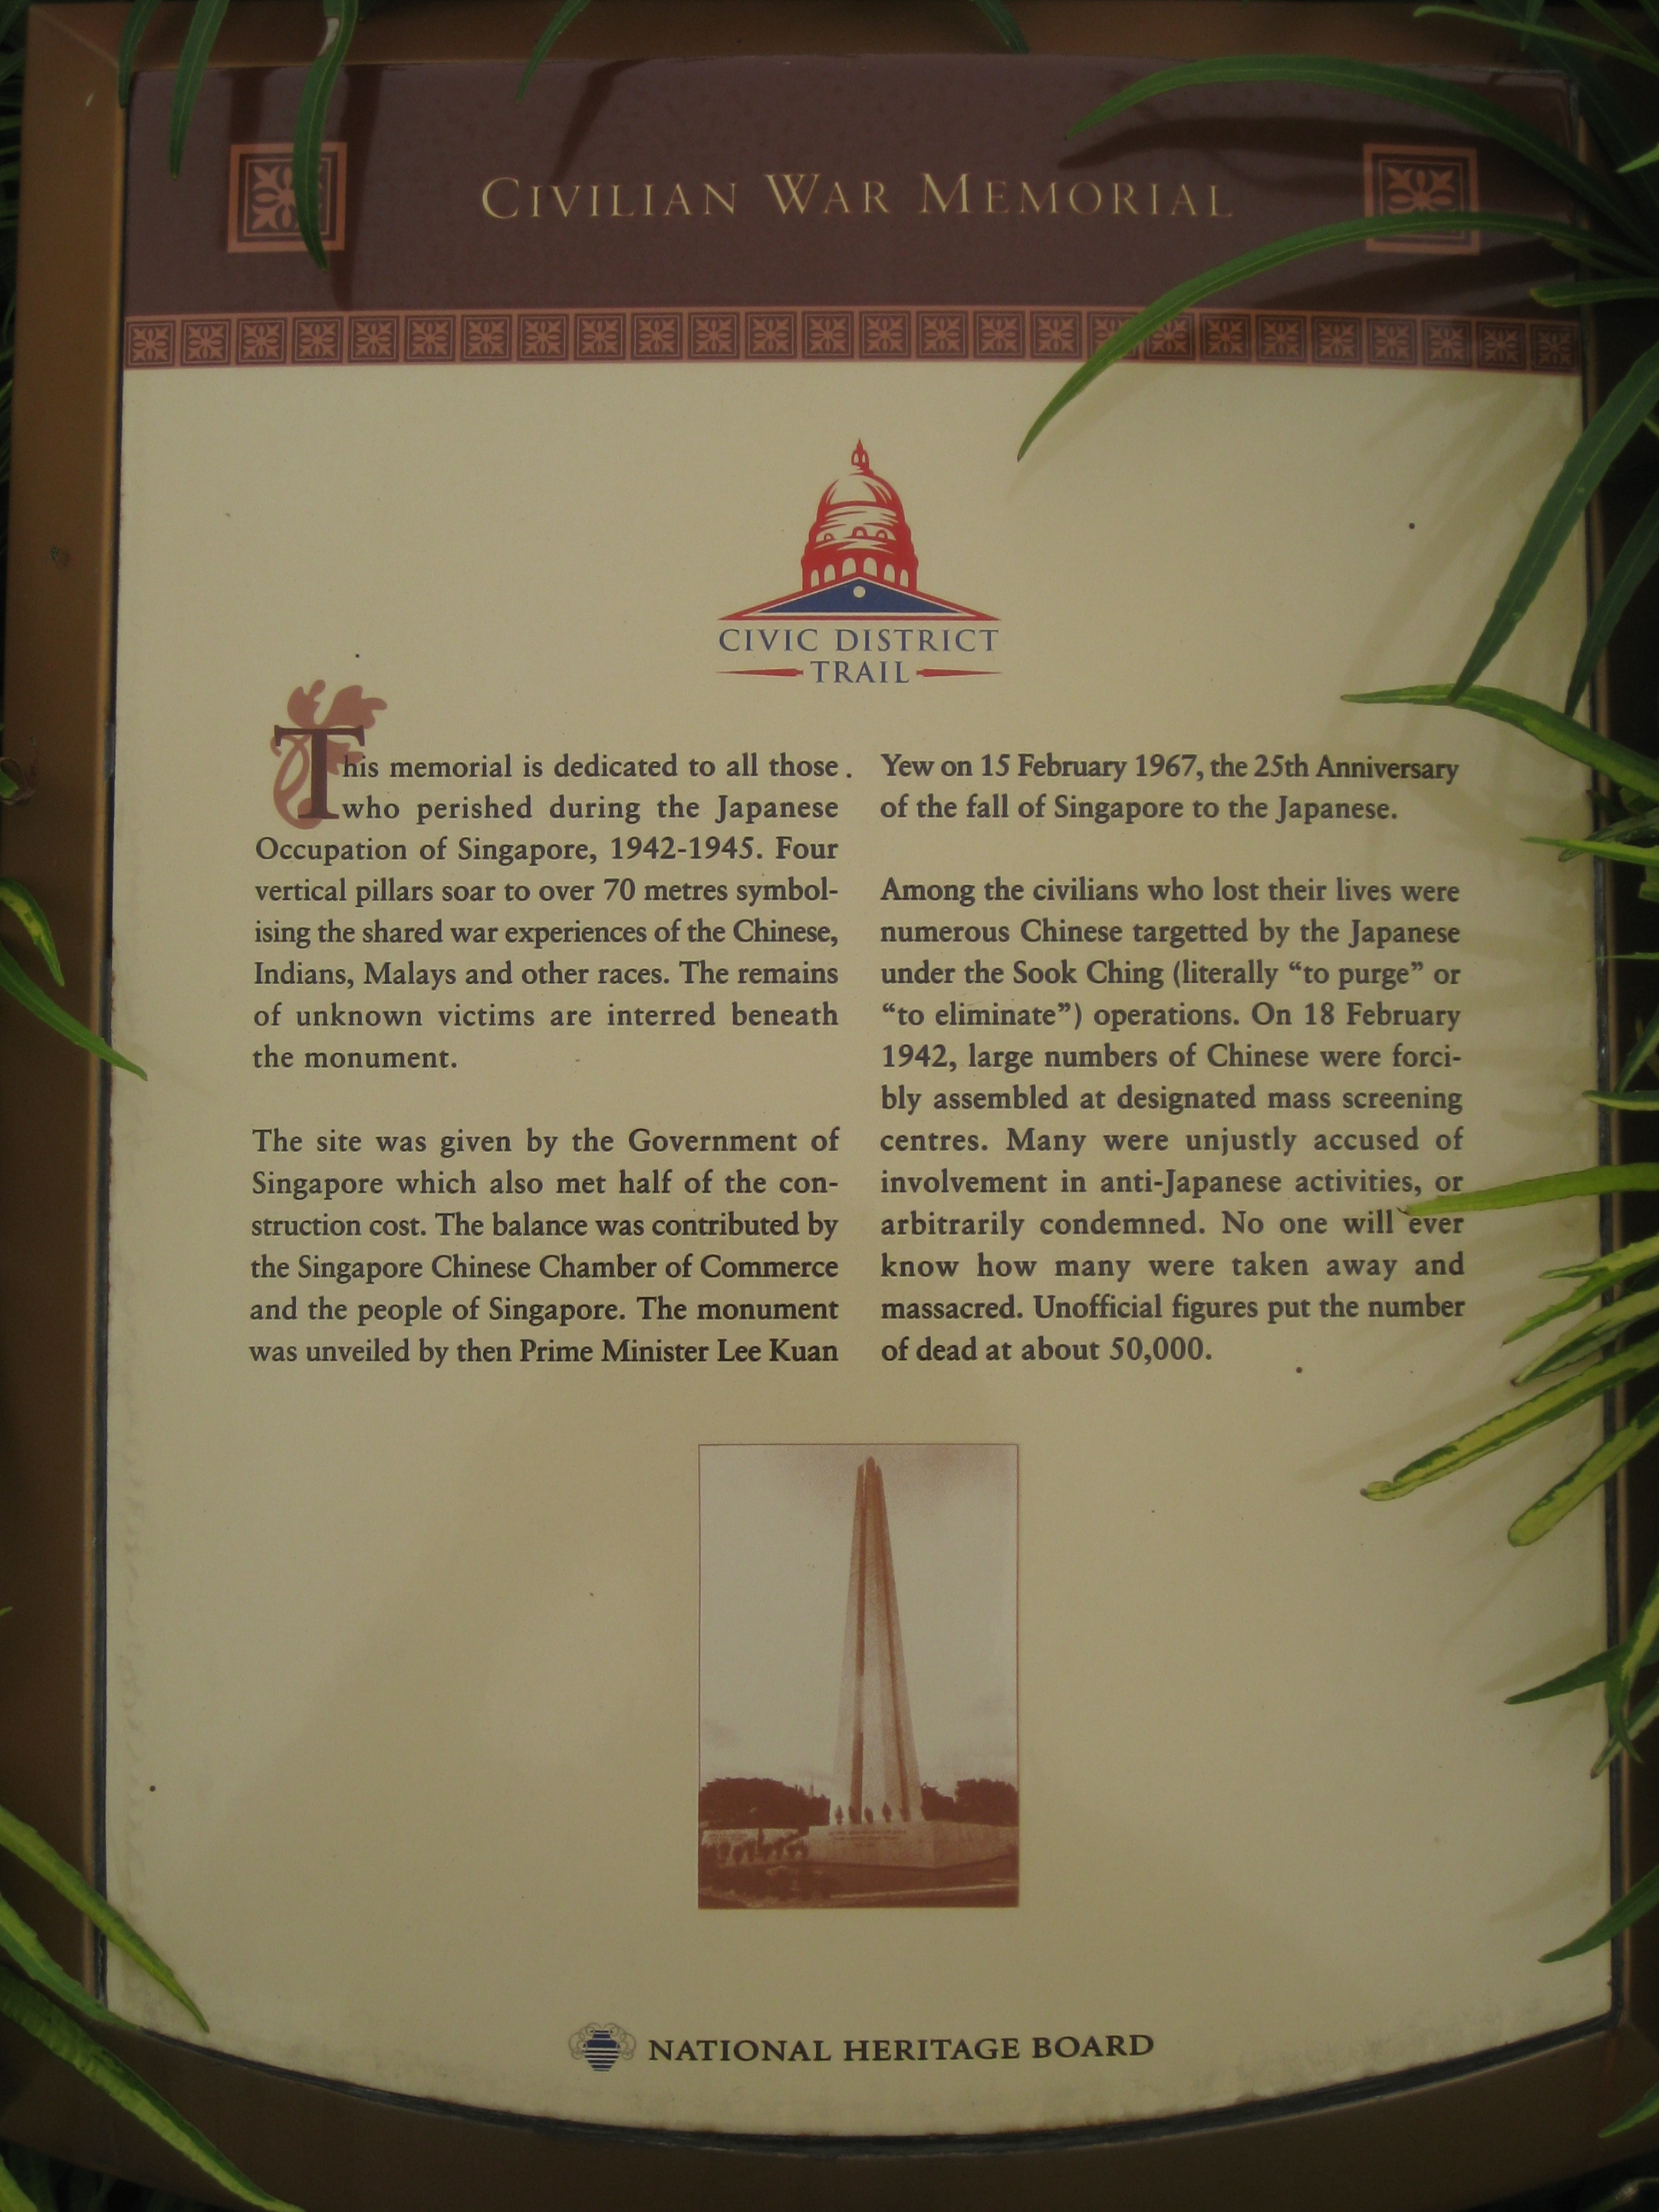 The National Heritage Board's (NHB) placard at the Civilian War Memorial